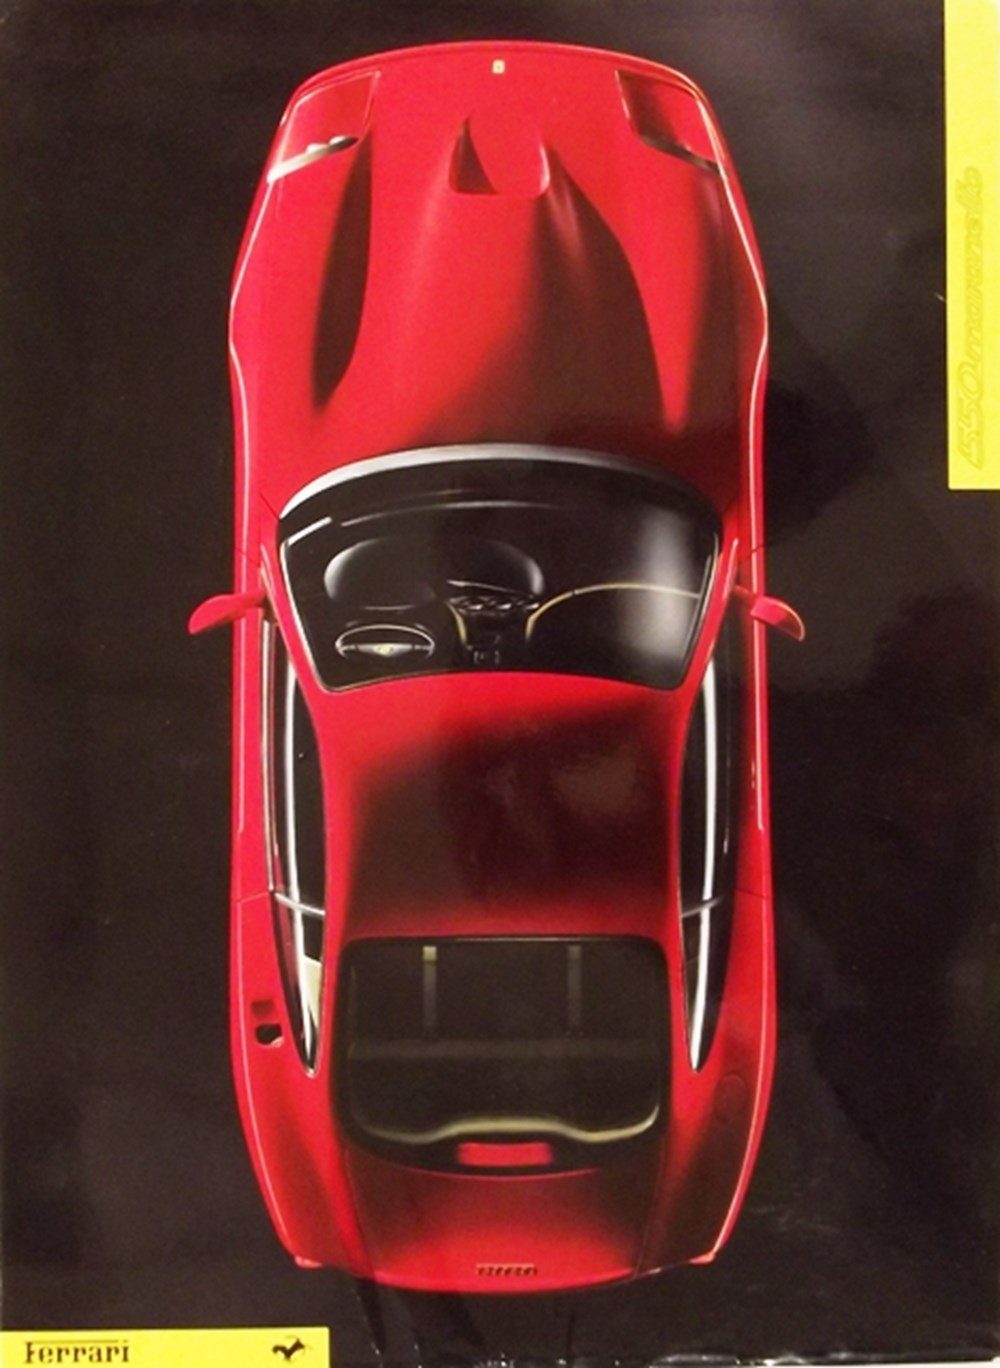 Lot 056 - Ferrari F355 brochure